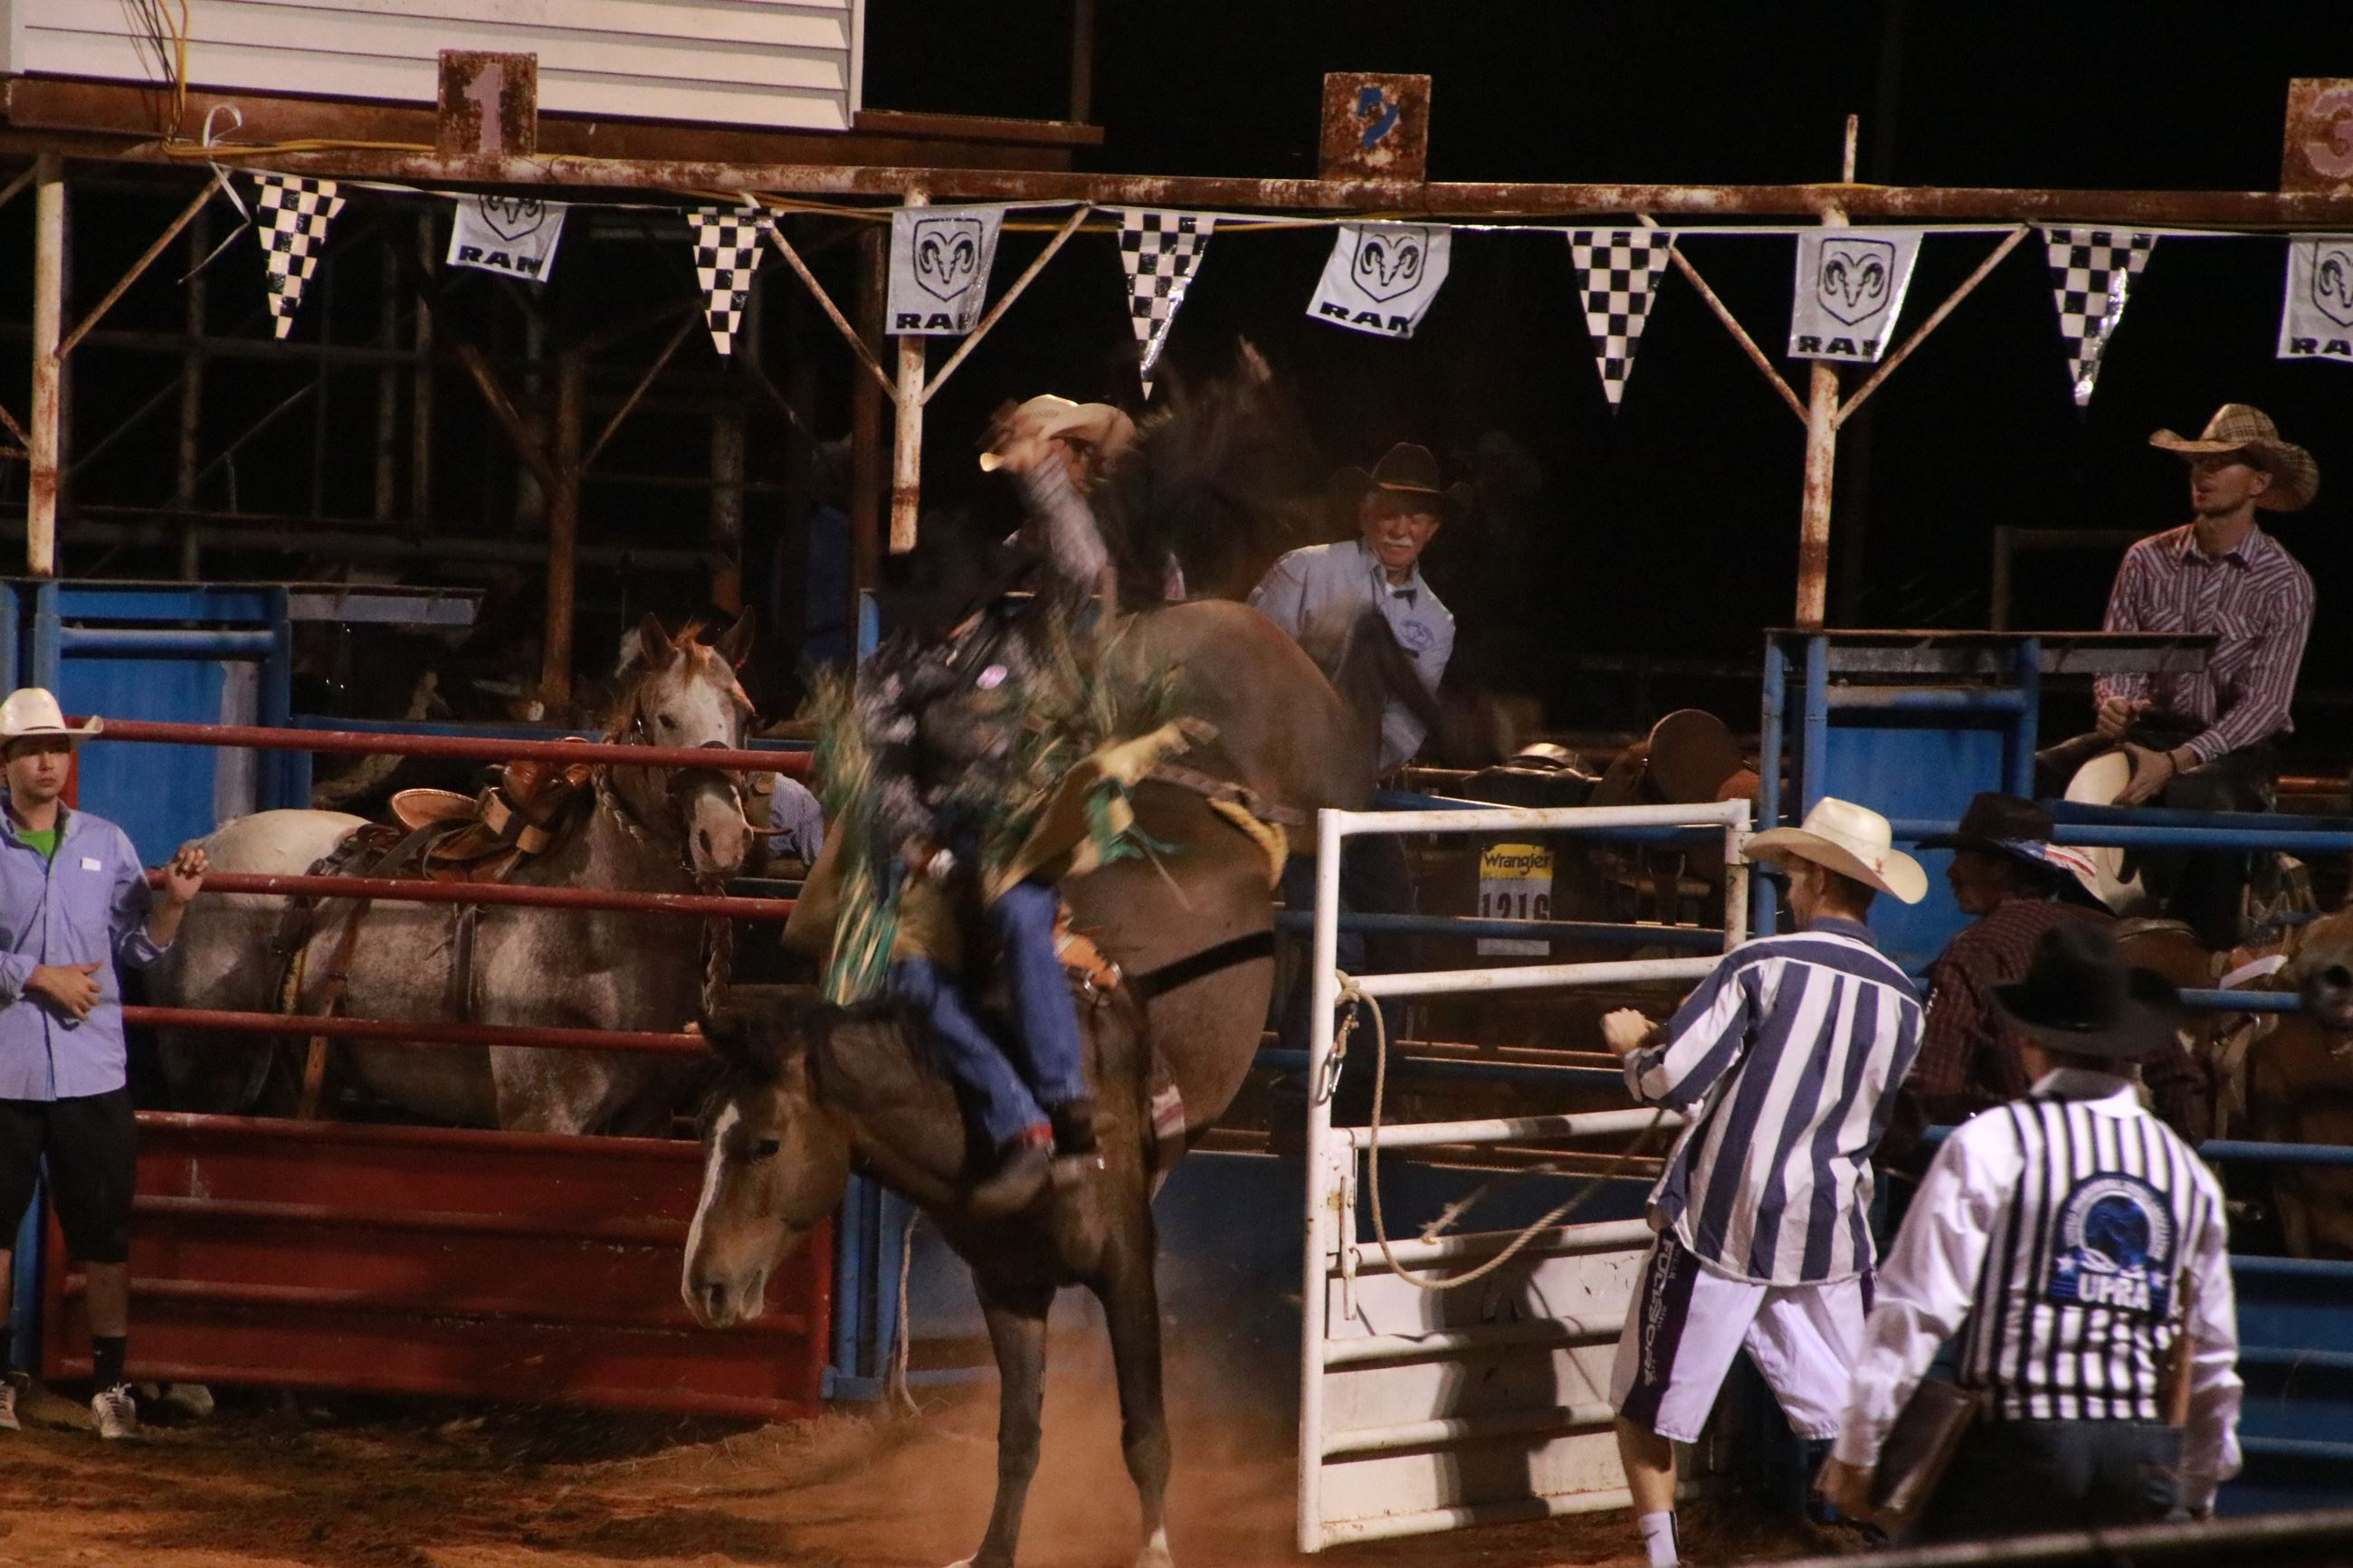 Excitement bursts out of the gate at Rockdale's Rodeo!